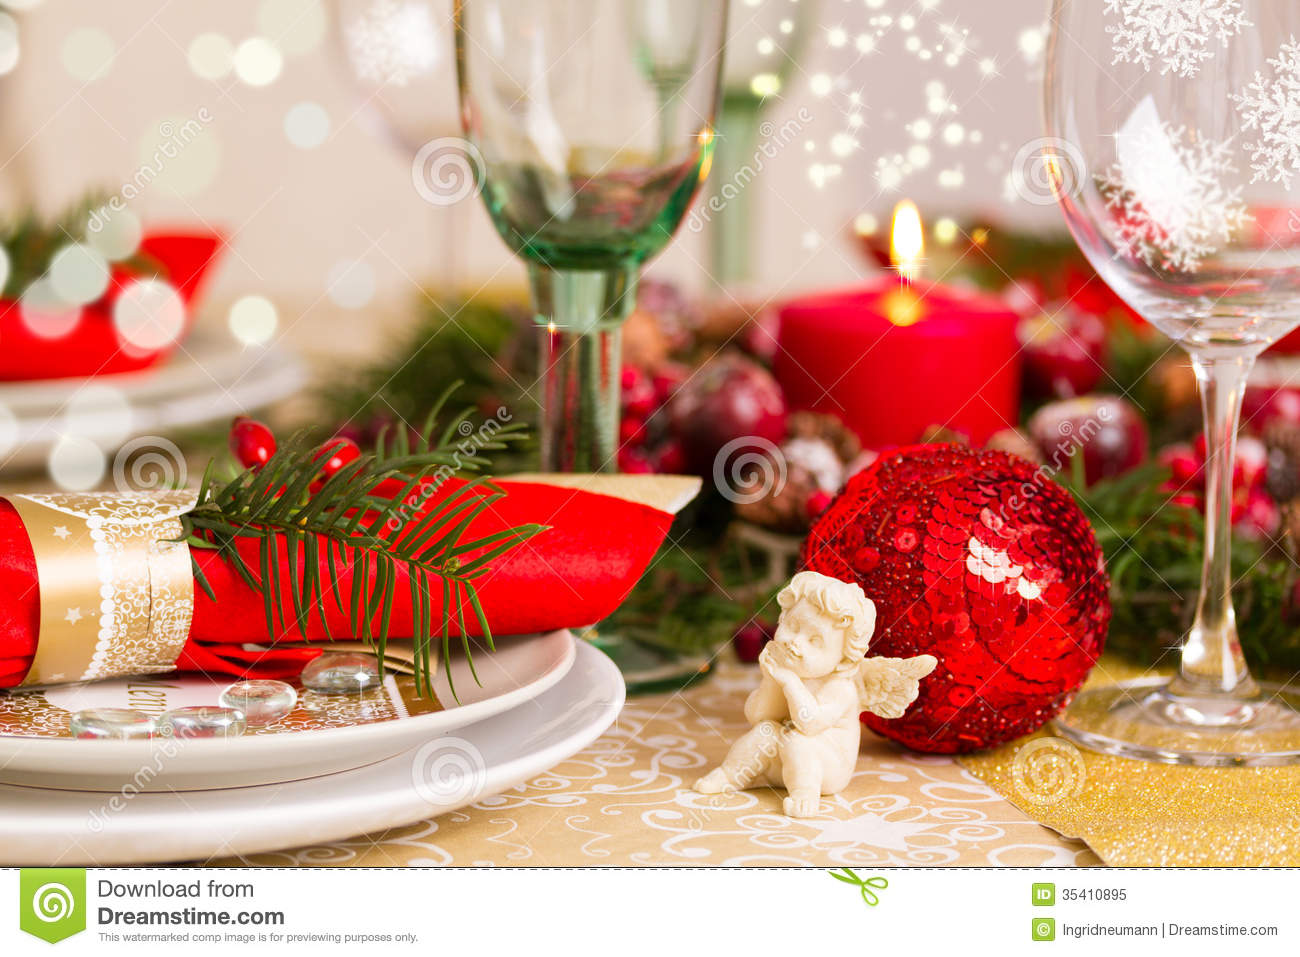 Christmas table decorations red and gold - Christmas Table Setting With Holiday Decorations Royalty Free Stock Photo